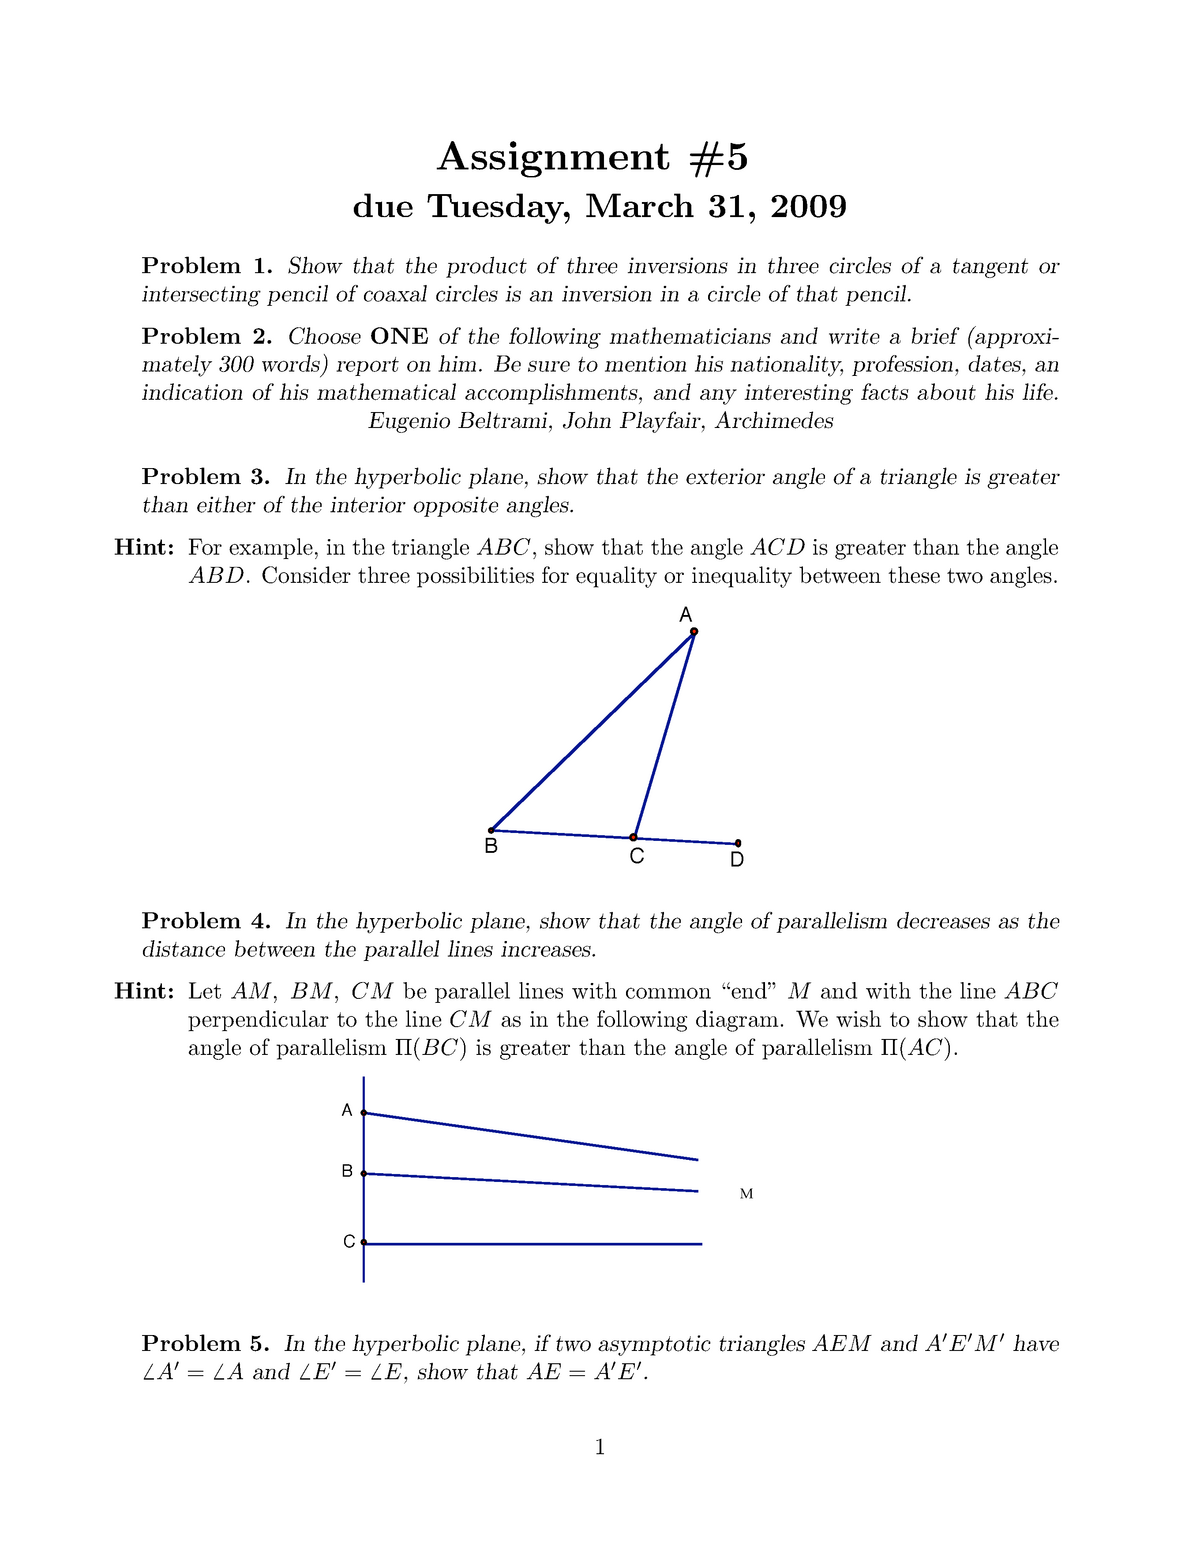 Assignment 5 - Questions - Math 2210: Introduction to